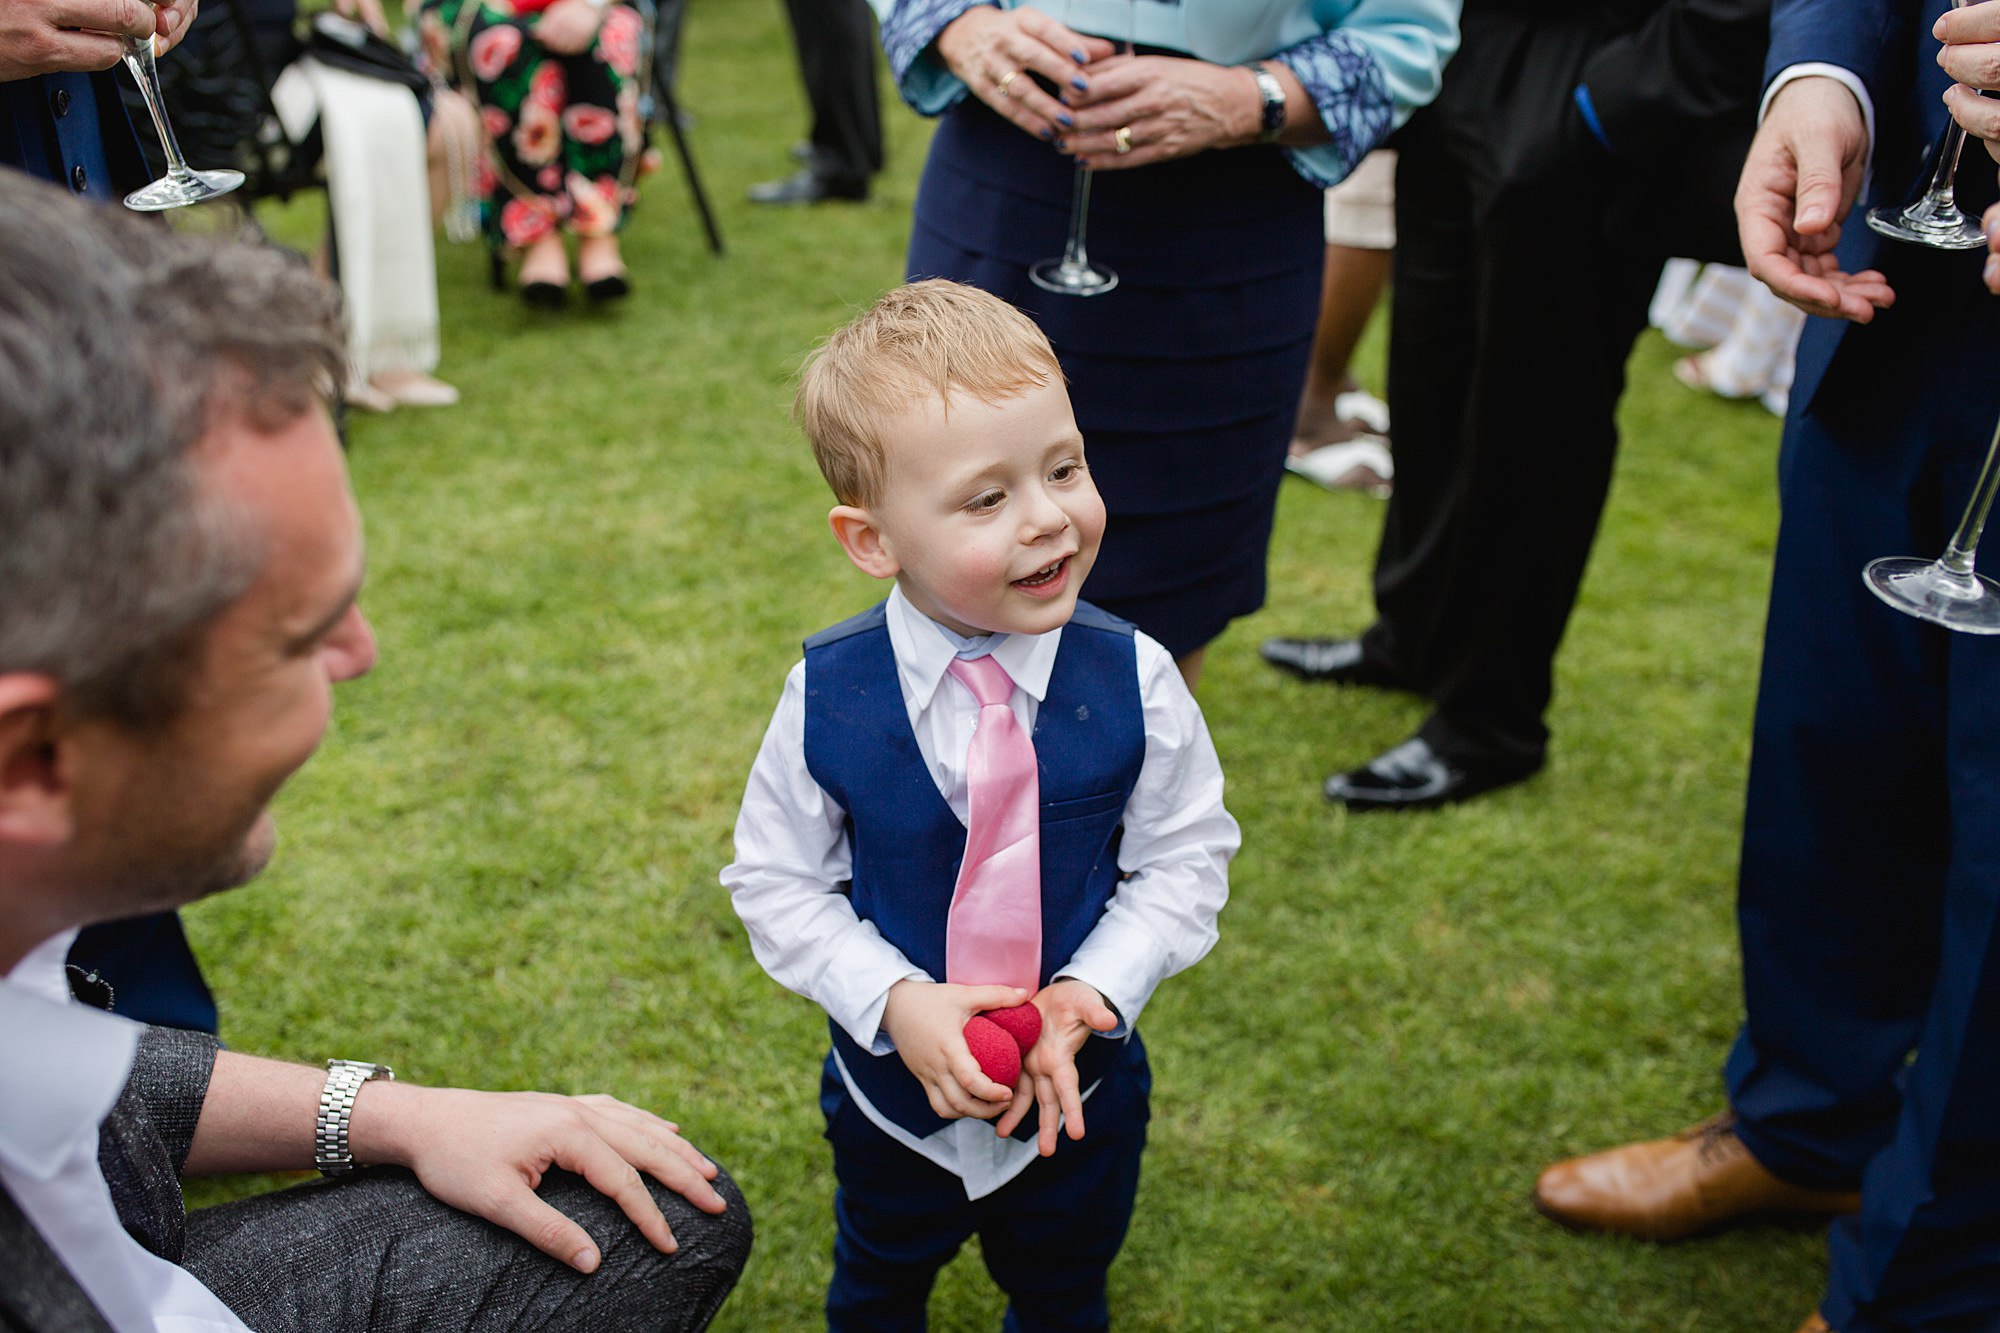 Bank of England Sports Centre wedding guest enjoys a magic trick